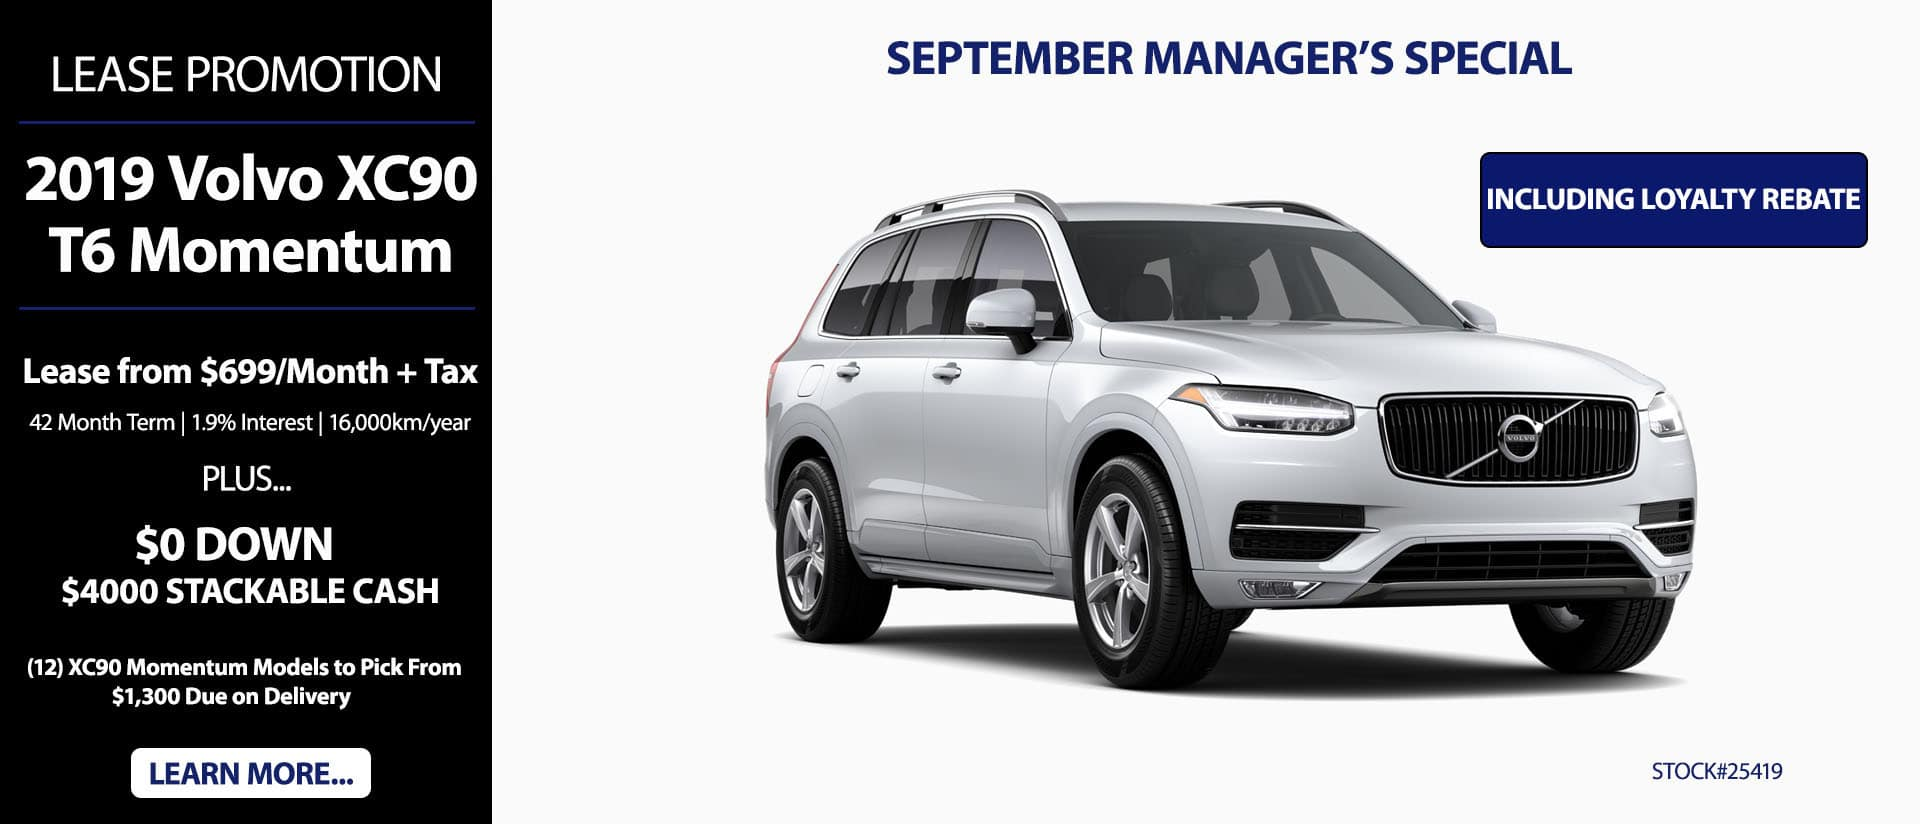 XC90 September Special